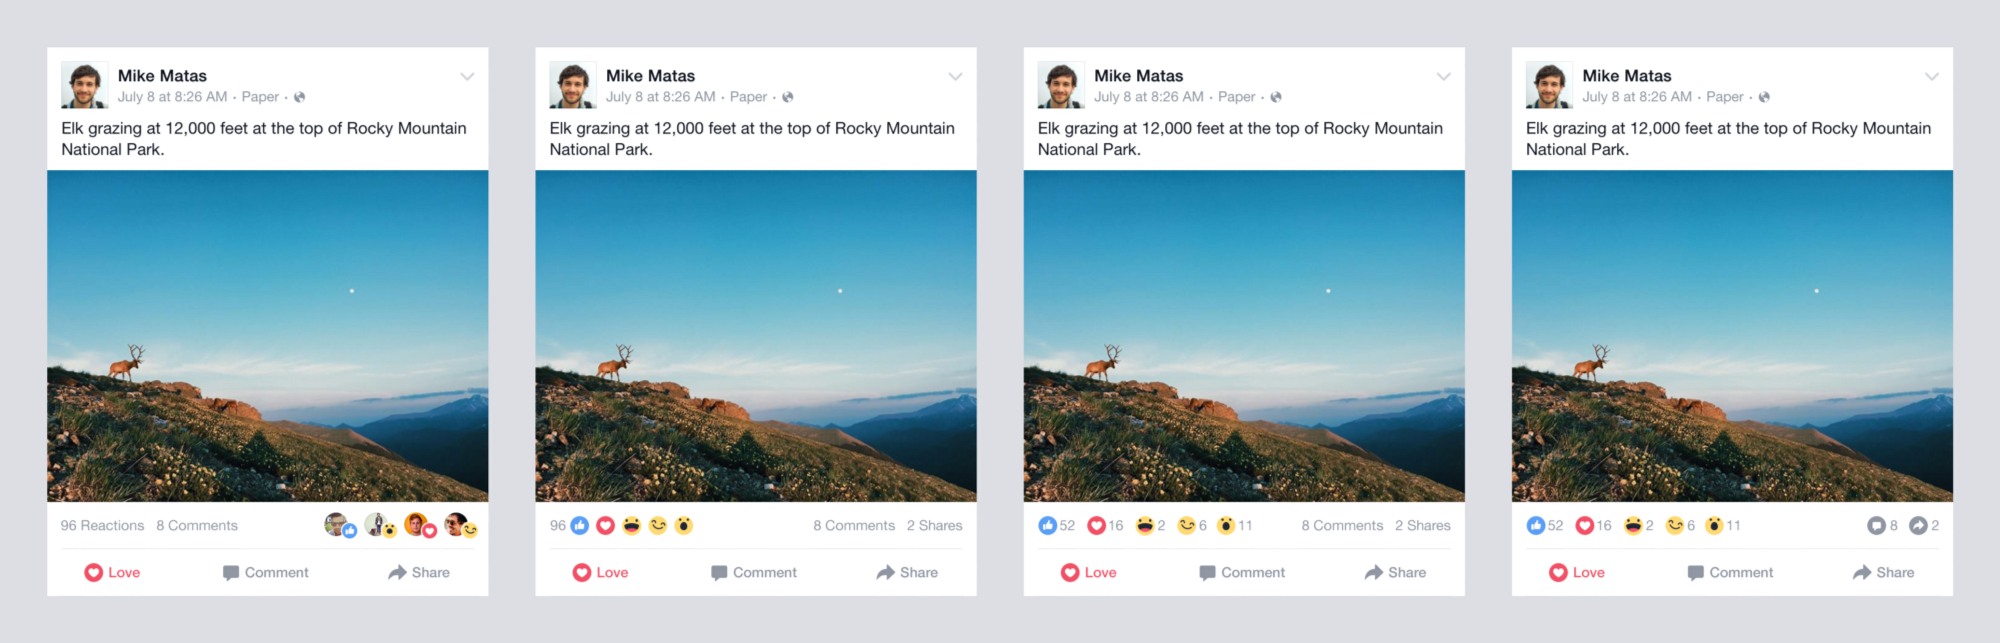 How Facebook's 'Reactions' Will Change the Game - An Overview for Marketers | Social Media Today